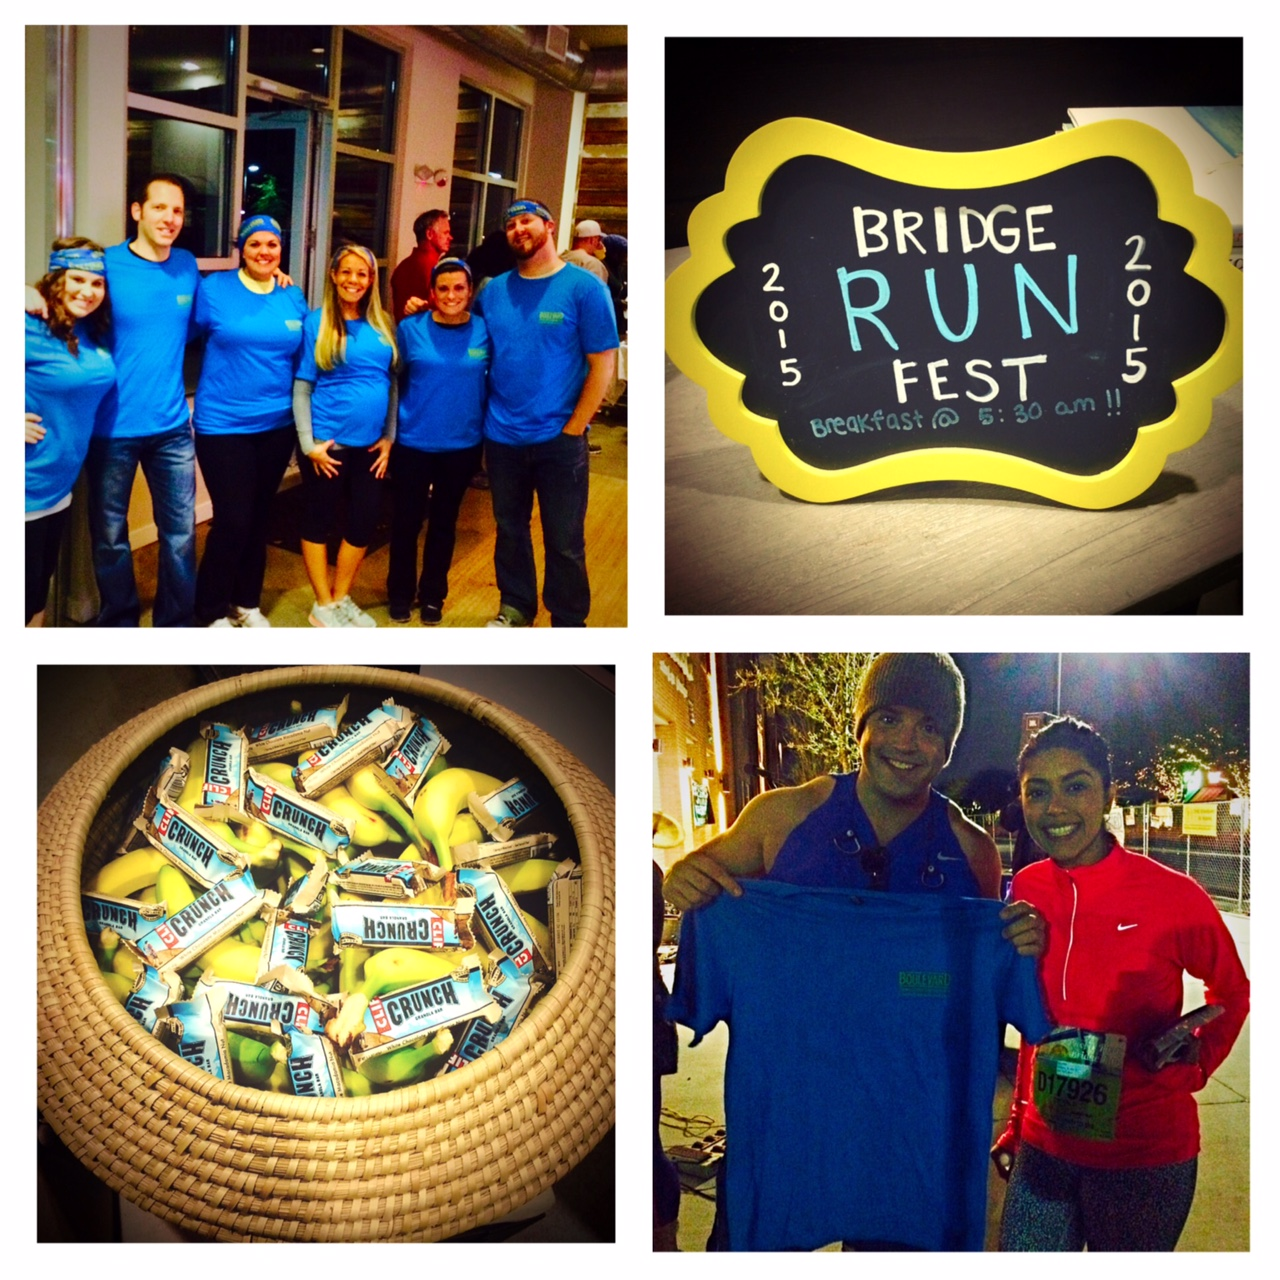 bridge run fest am 1